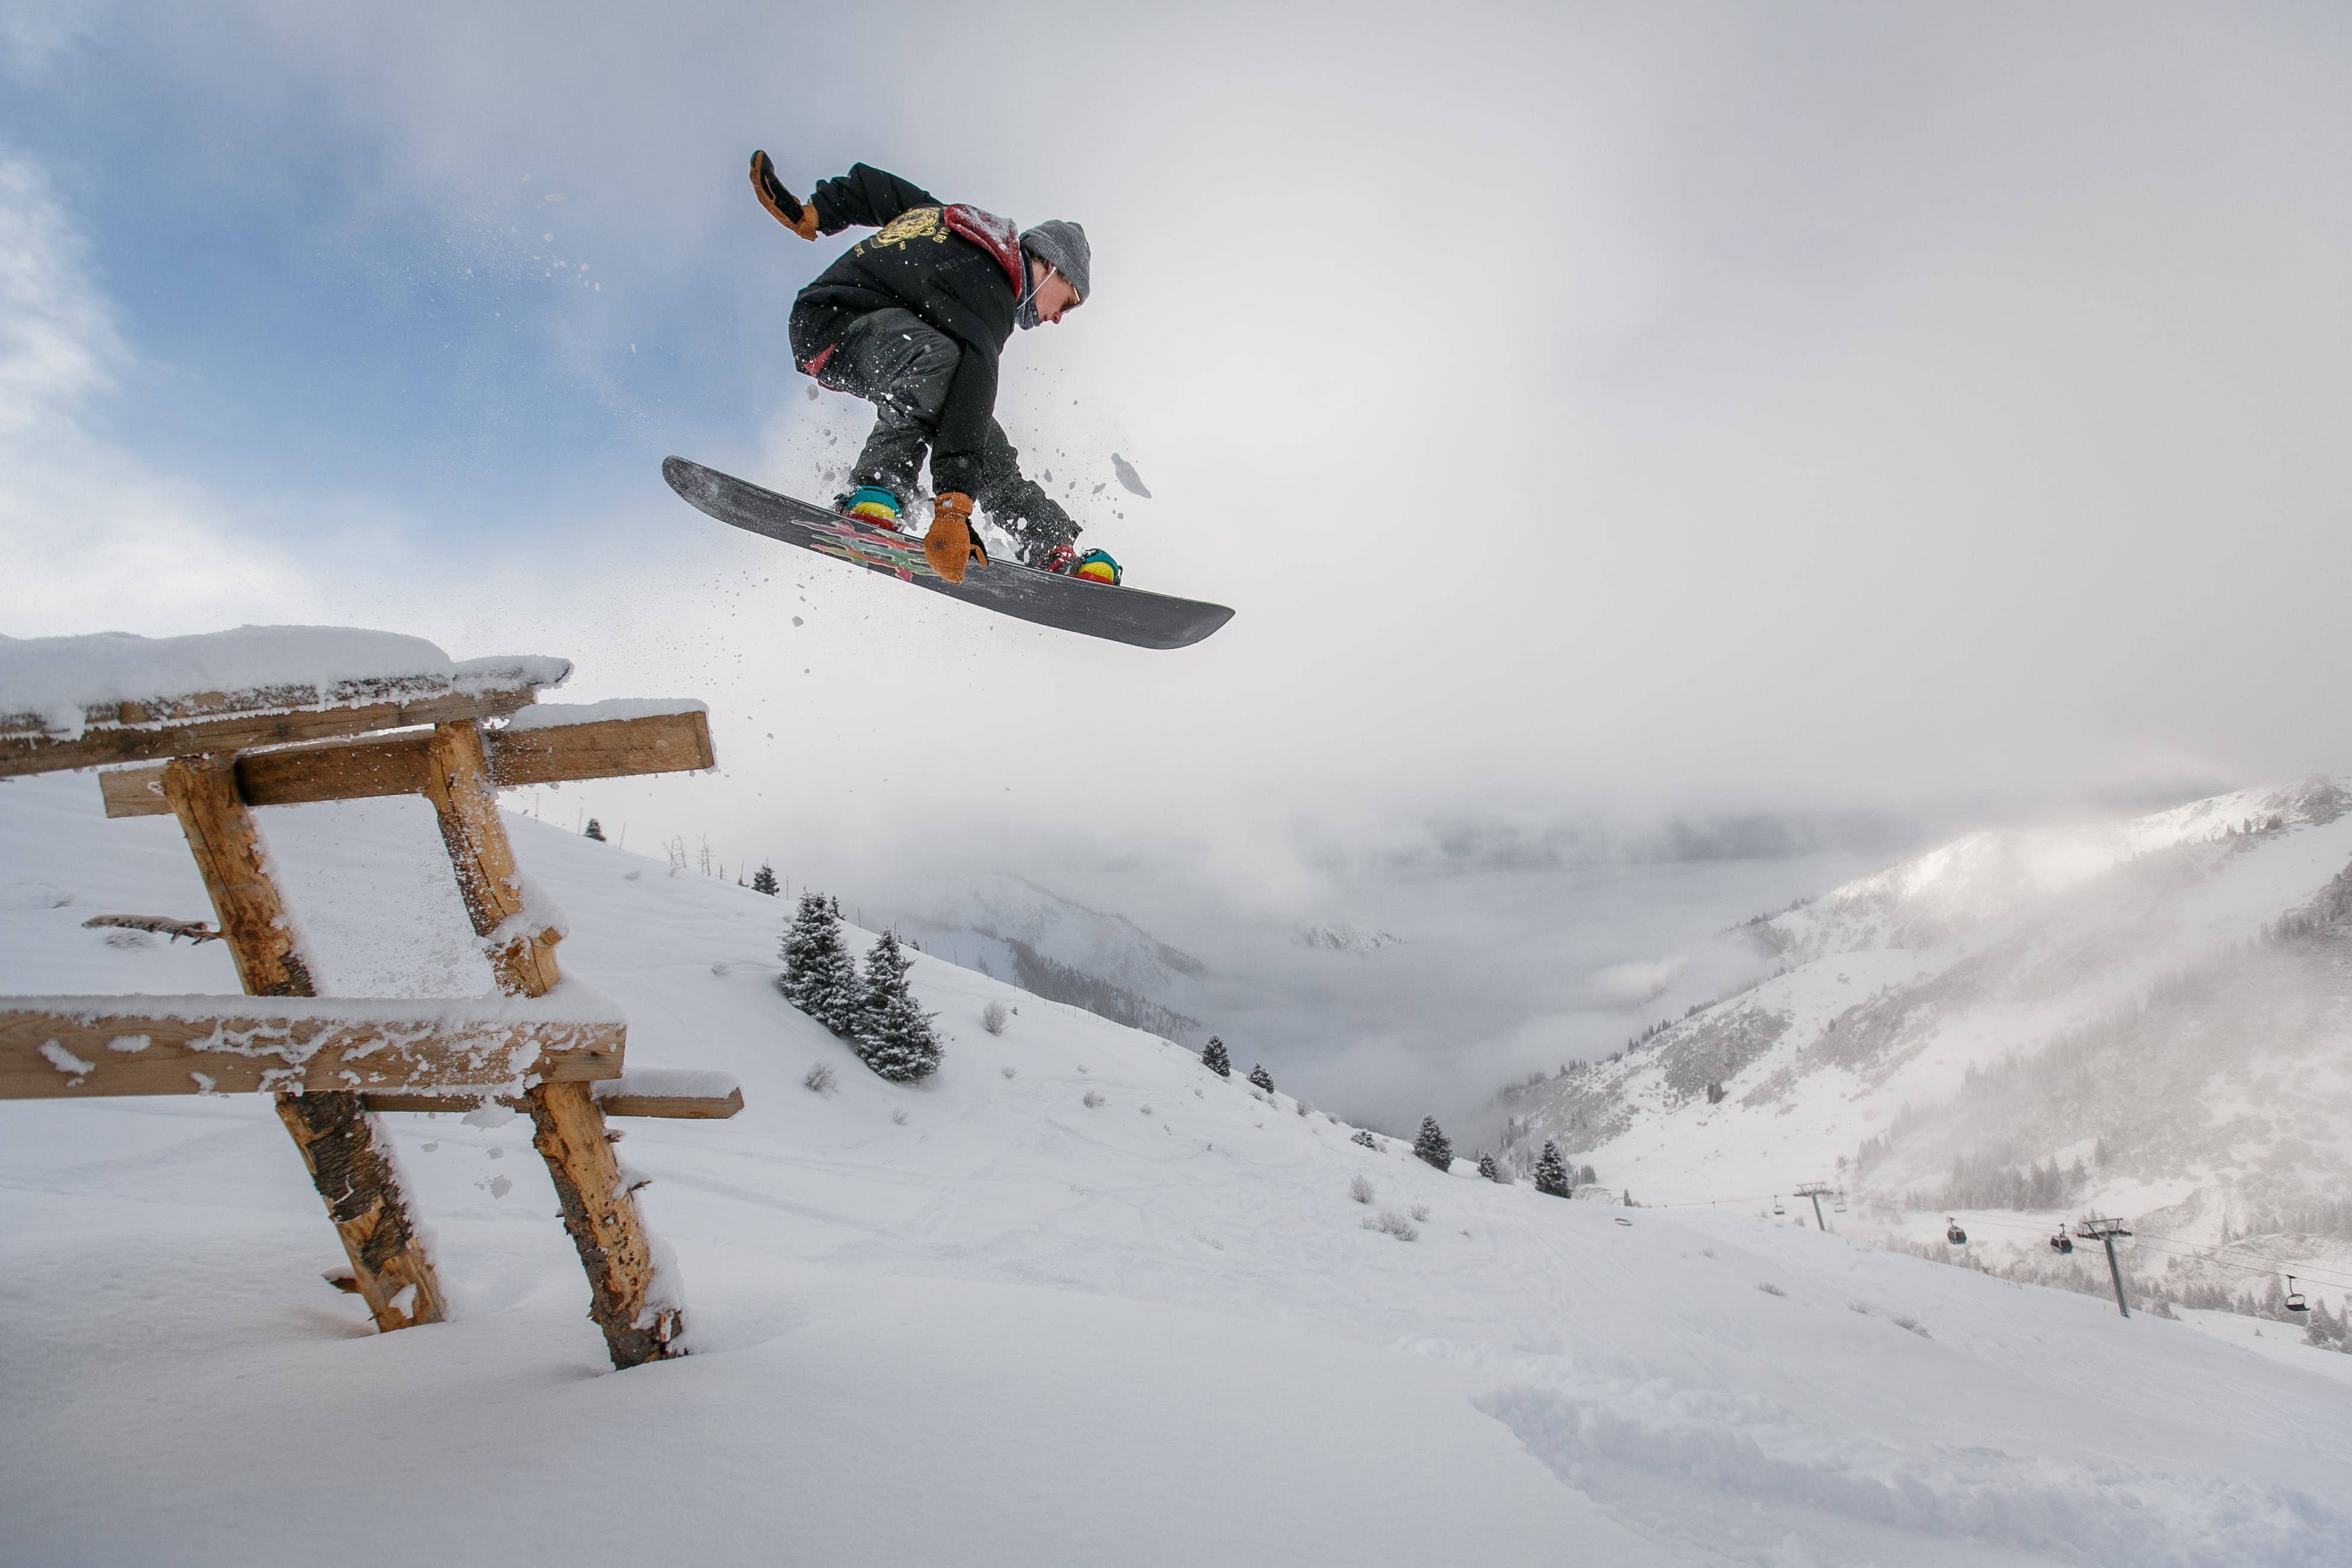 Man in Black Snowboard With Binding Performs a Jump